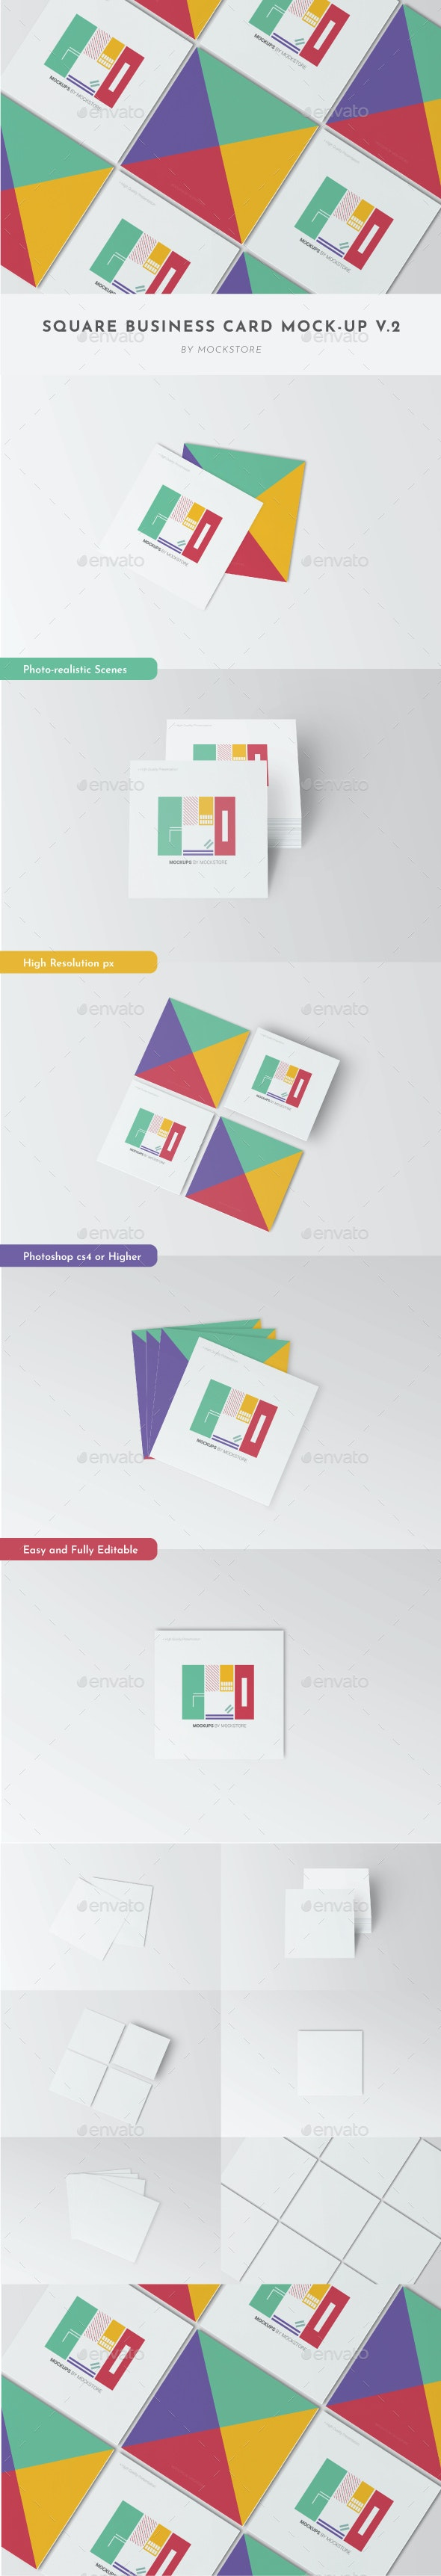 Square Business Card Mockup Pack - Business Cards Print